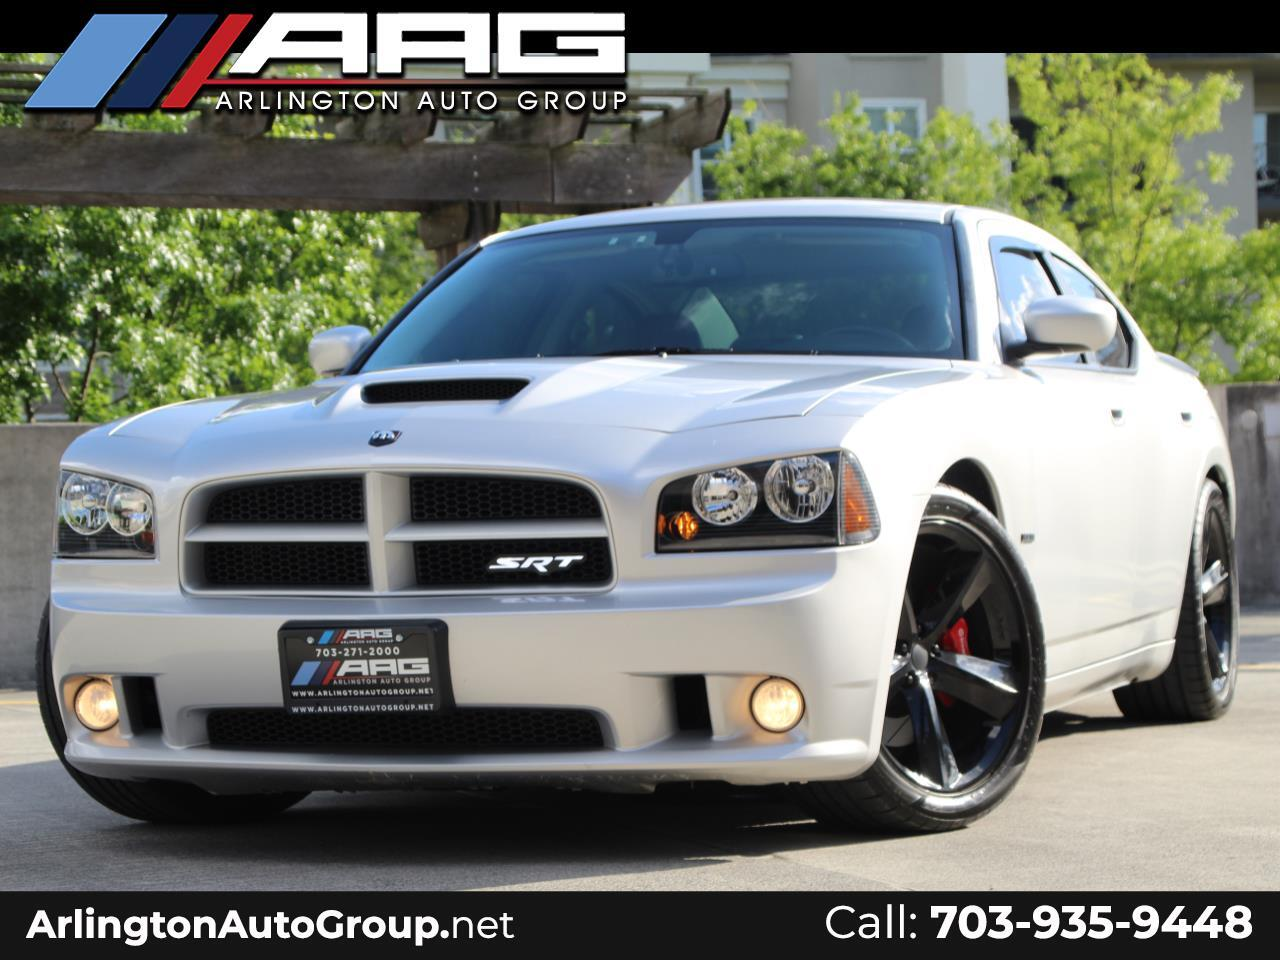 2010 Dodge Charger 4dr Sdn SRT8 RWD *Ltd Avail*